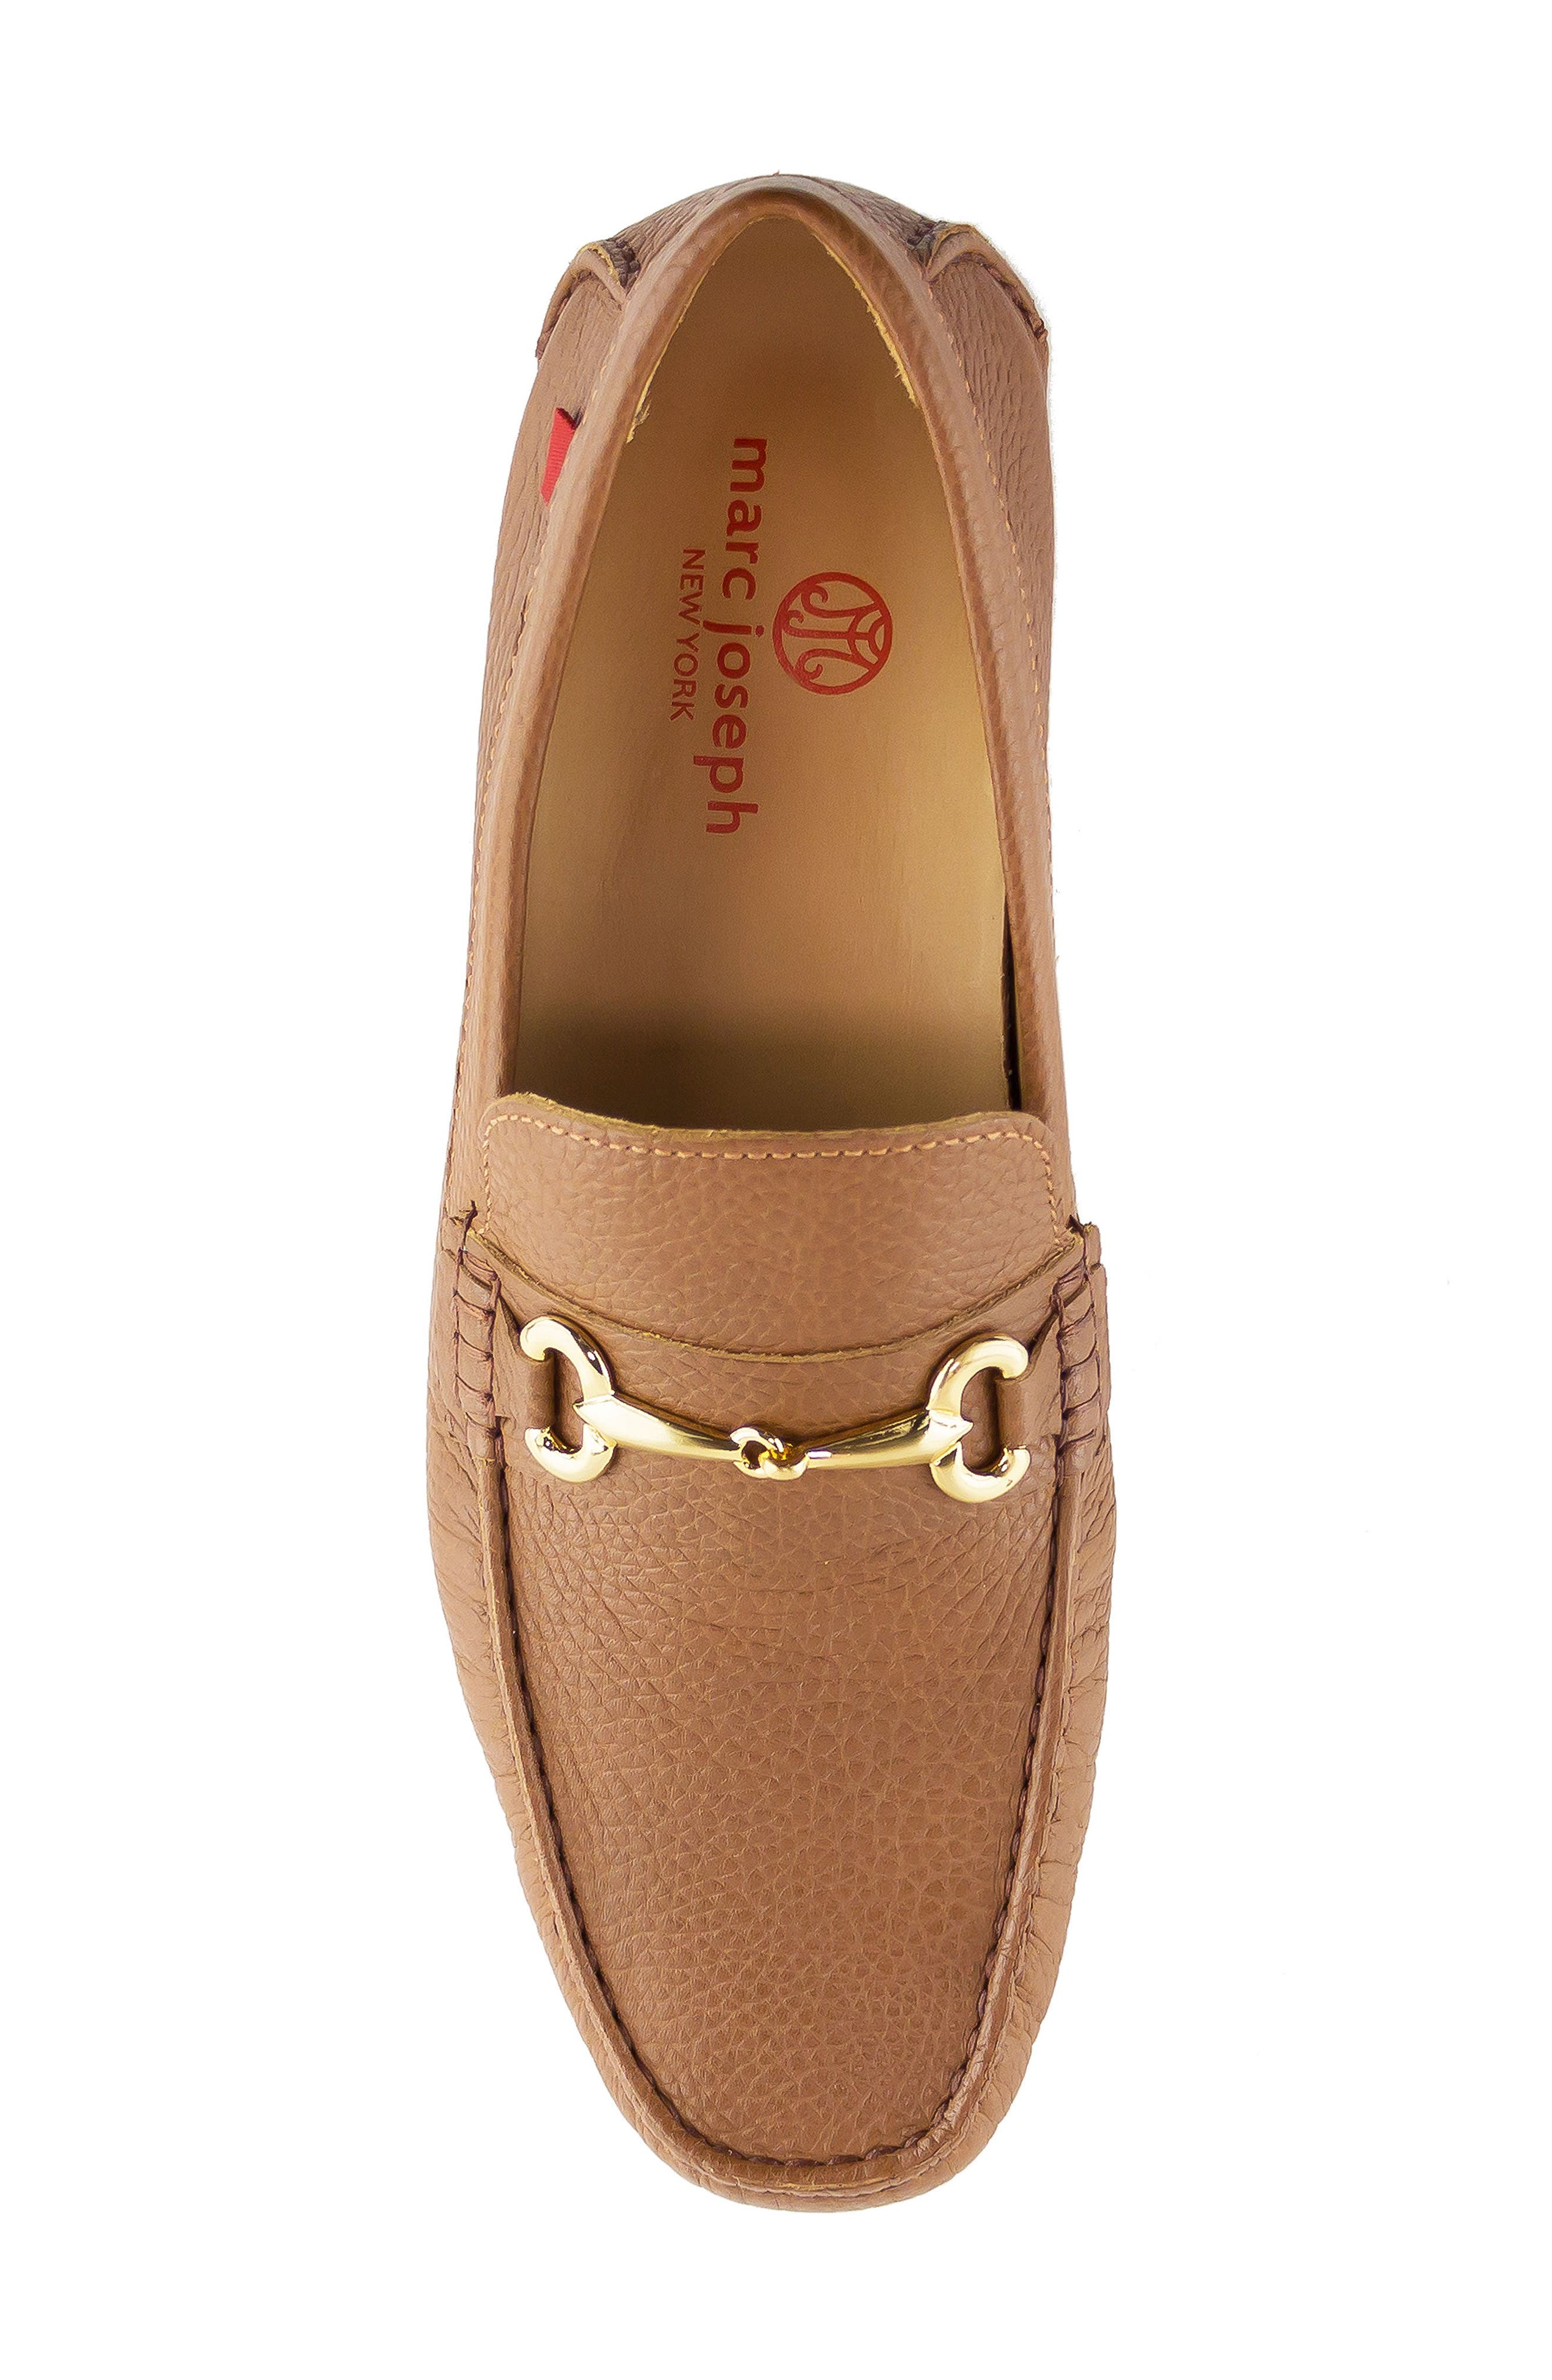 Wall Street Driving Shoe,                             Alternate thumbnail 5, color,                             Cognac Leather